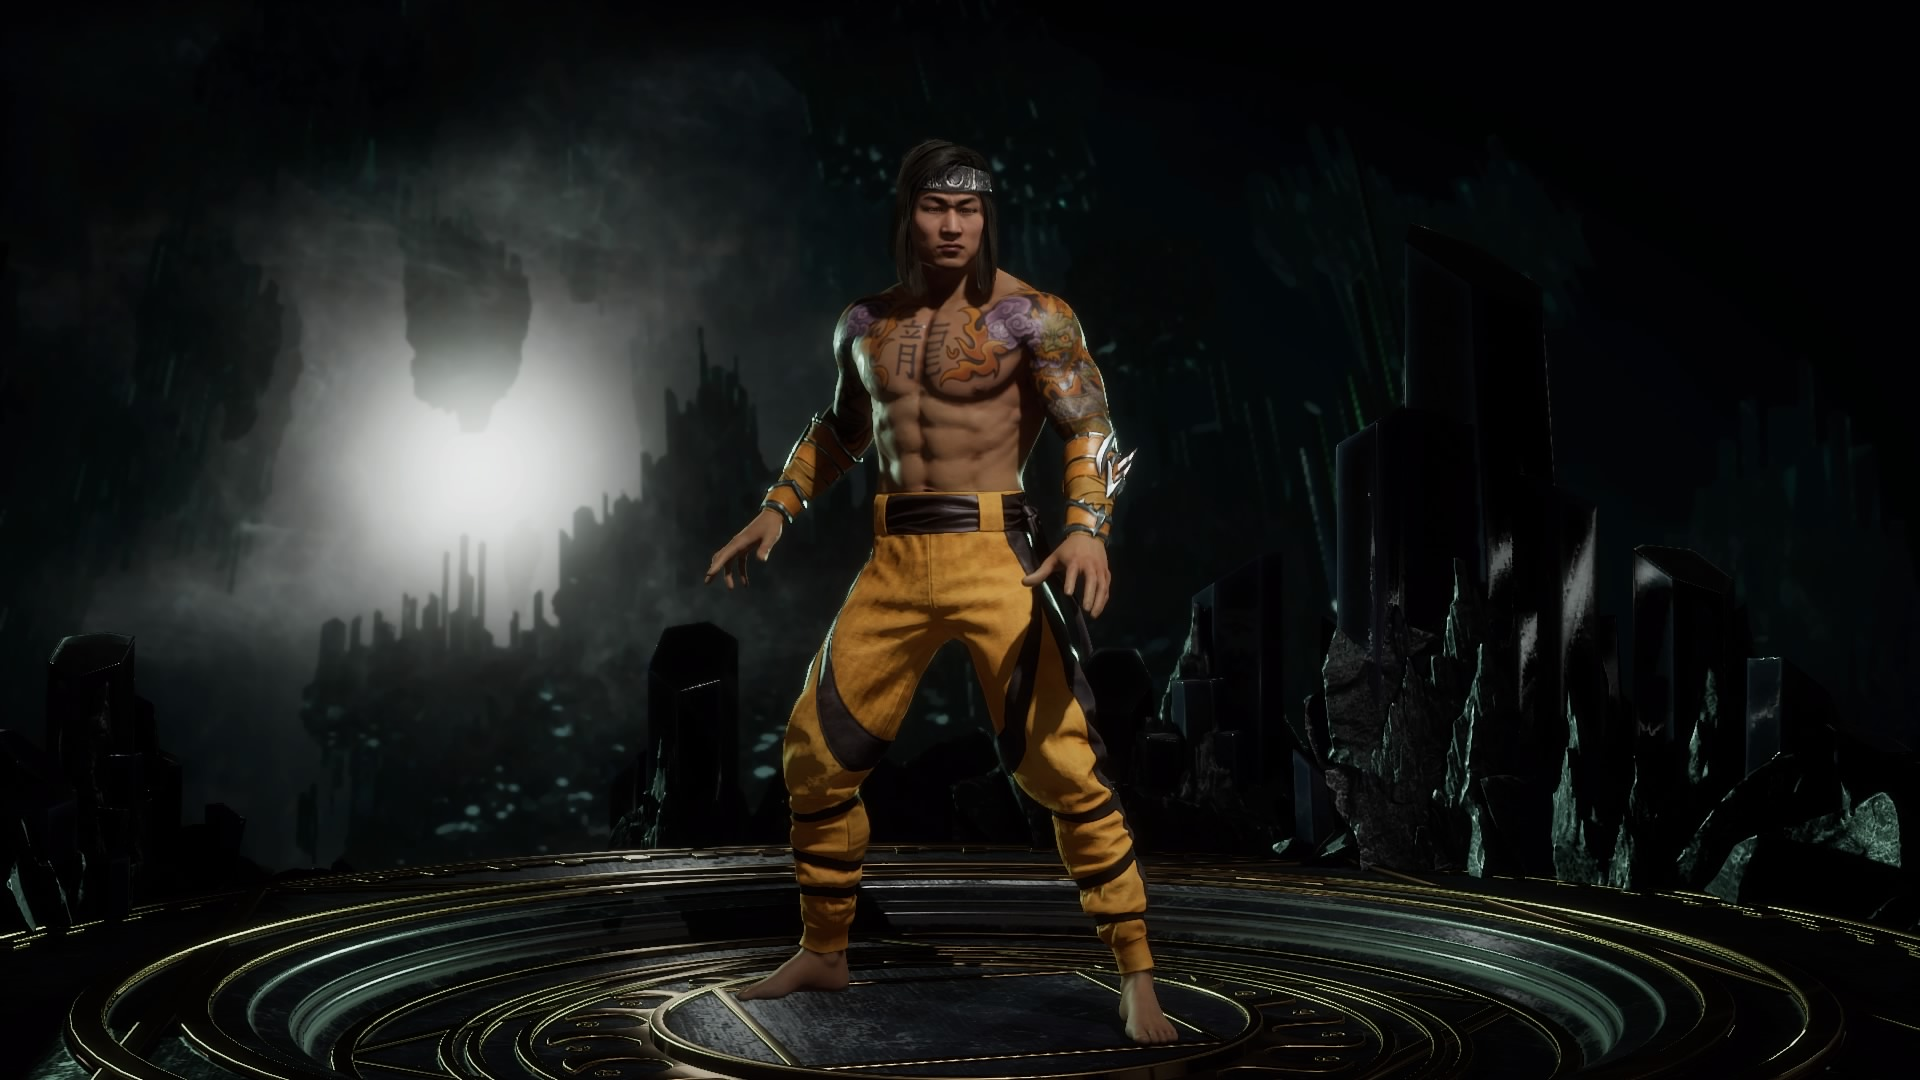 Mortal Kombat 11 Update 1 05 Patch Notes - PlayStation LifeStyle